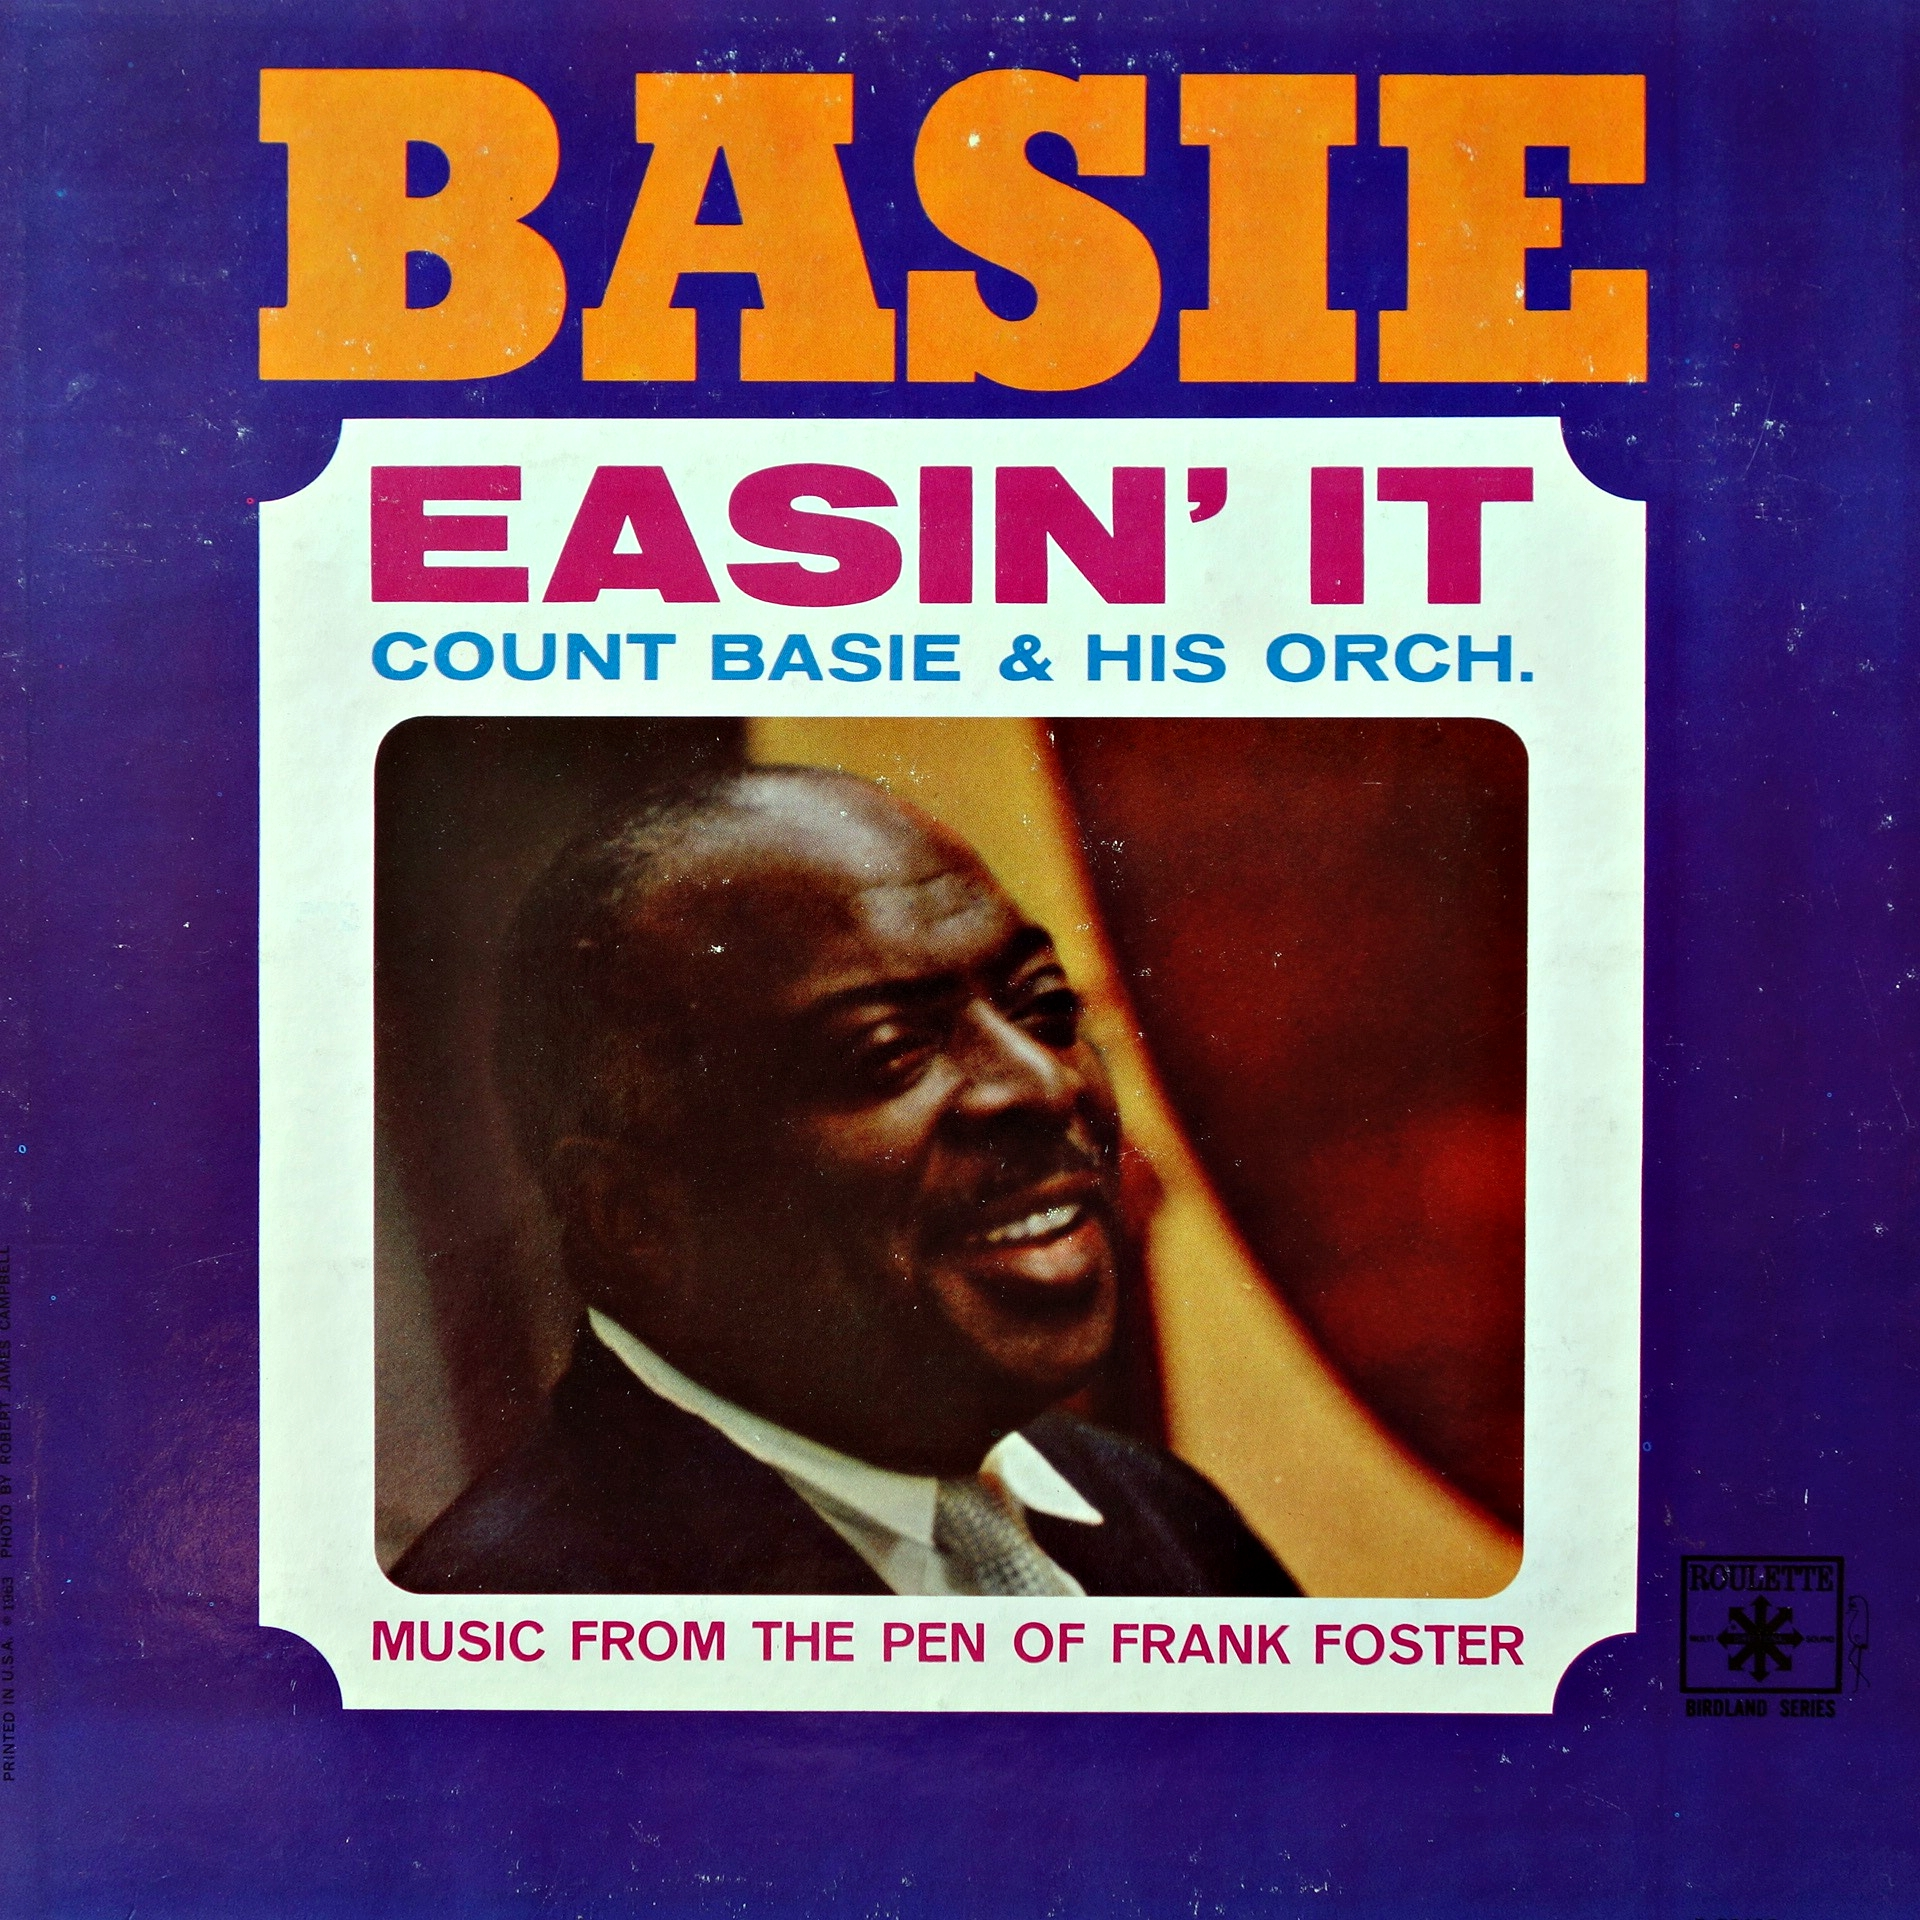 LP Count Basie & His Orch. ‎– Easin' It (Music From The Pen Of Frank Foster)